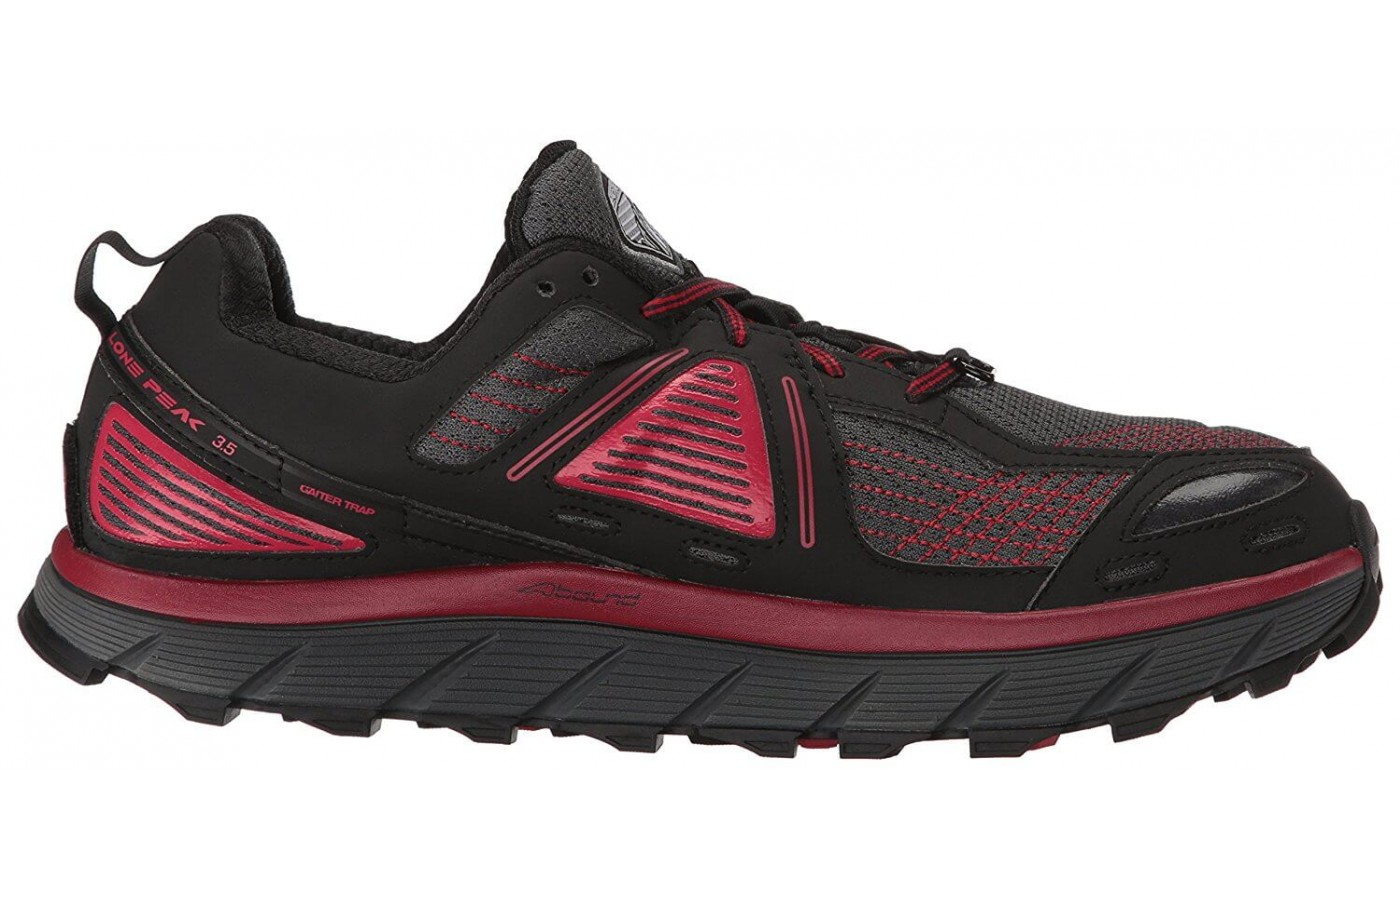 Best Cheap Running Shoes Under